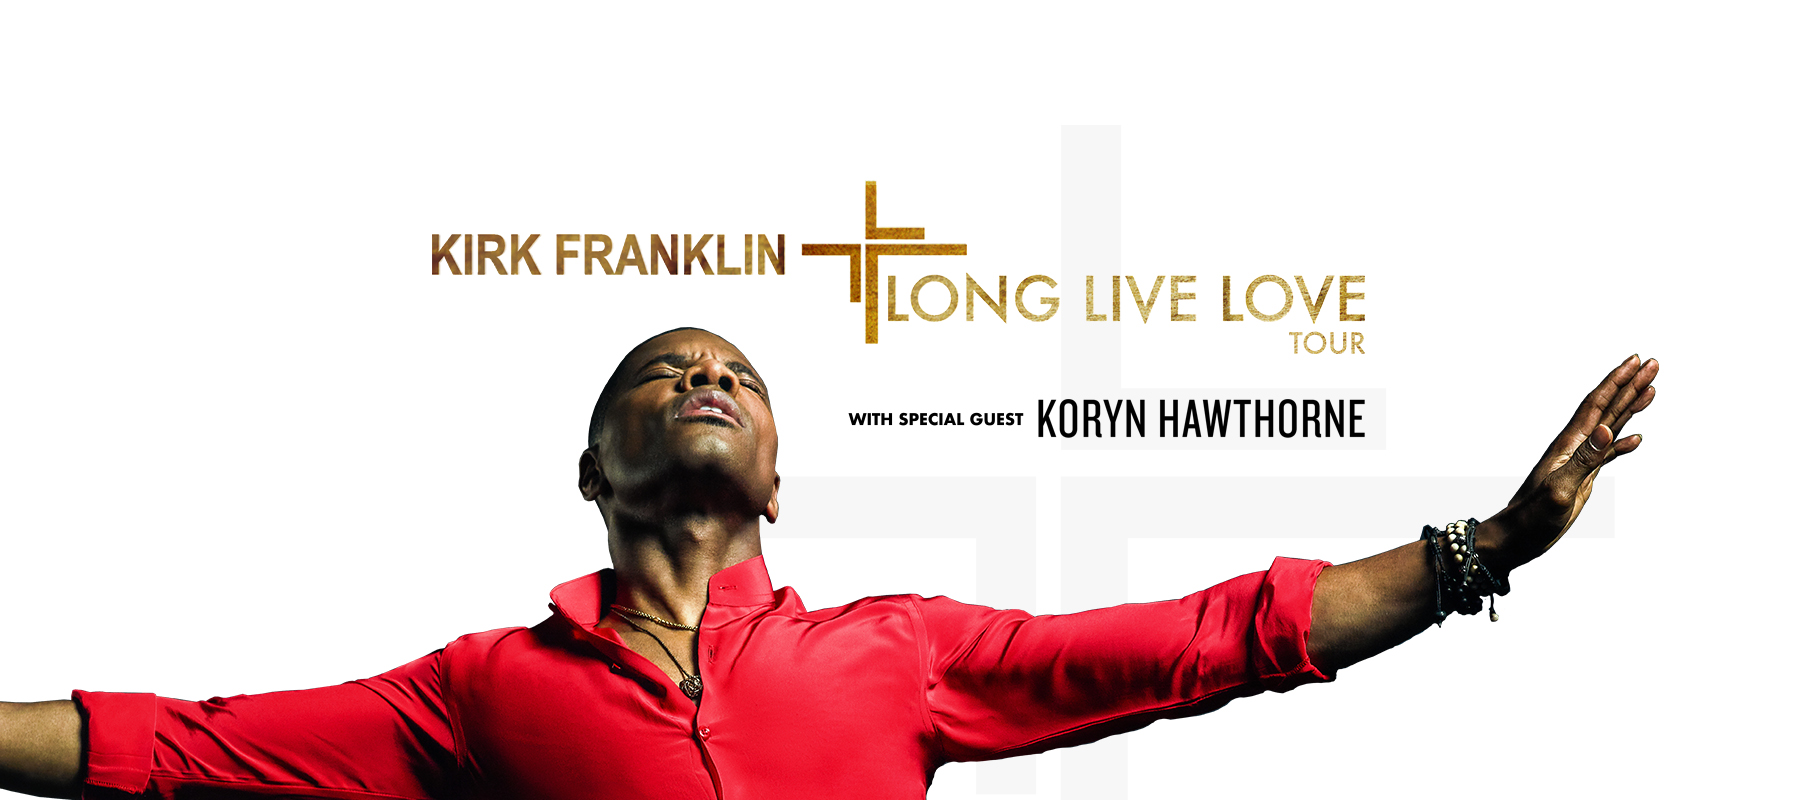 Kirk Franklin - Long Live Love Tour logo